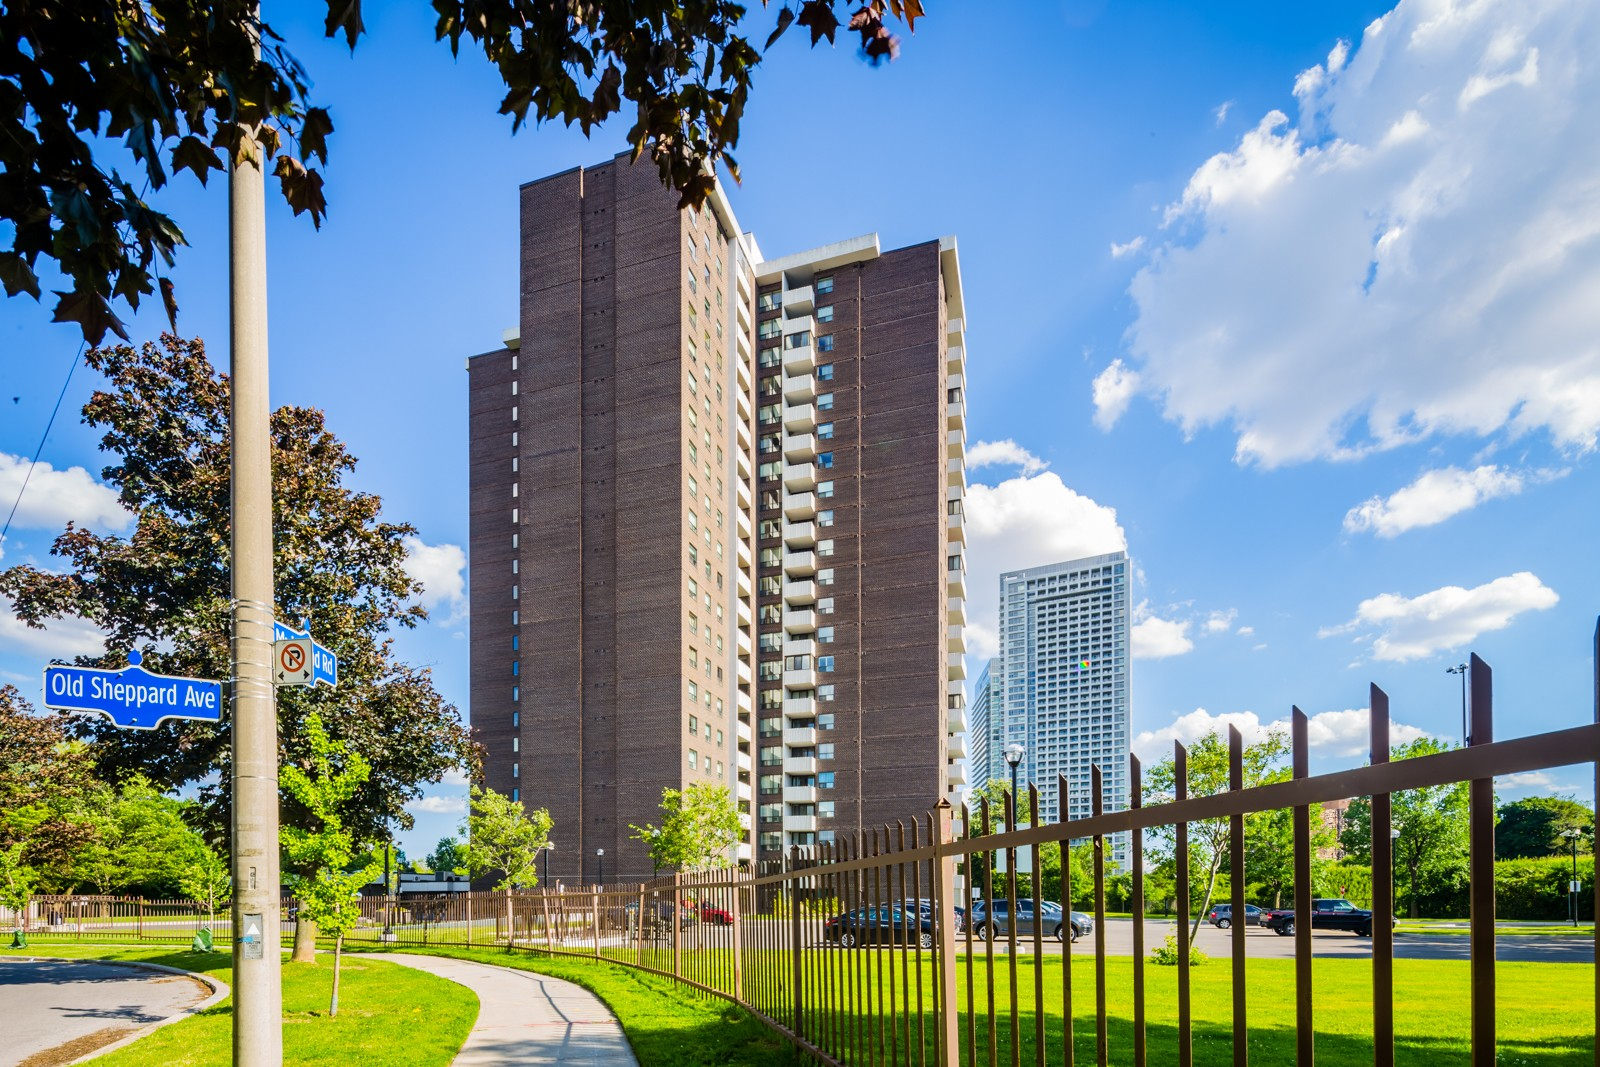 5 Old Sheppard Avenue Condos at 5 Old Sheppard Ave, Toronto 0